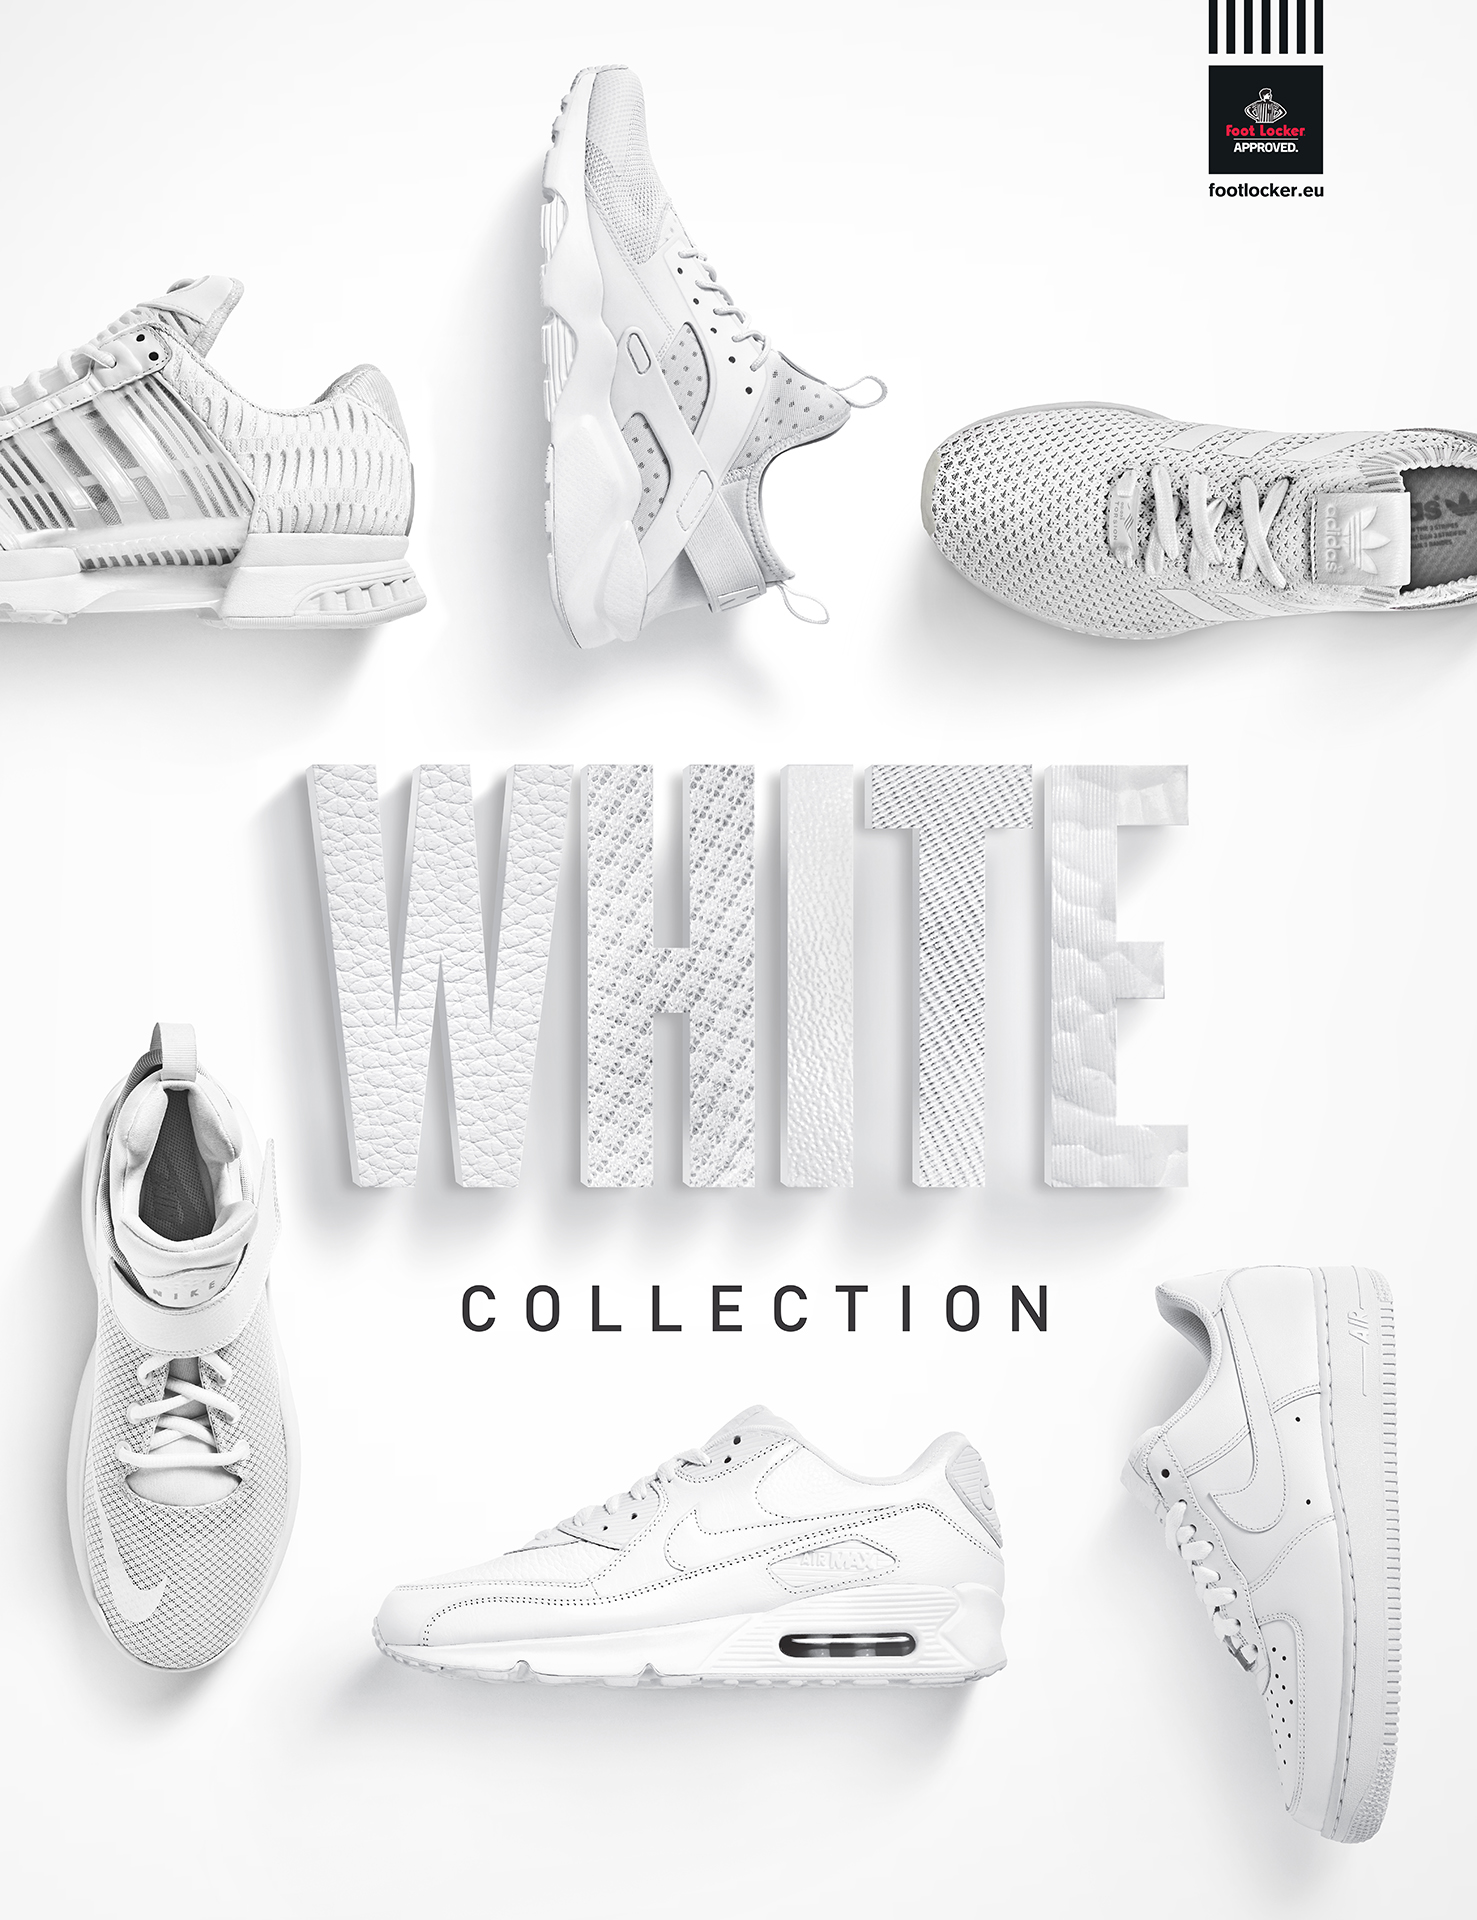 footlocker-white-collection-sneakers-trainers-shoes-josh-caudwell-photography-london-commercial-product-photographer-street-style-fashion-accessory.jpg